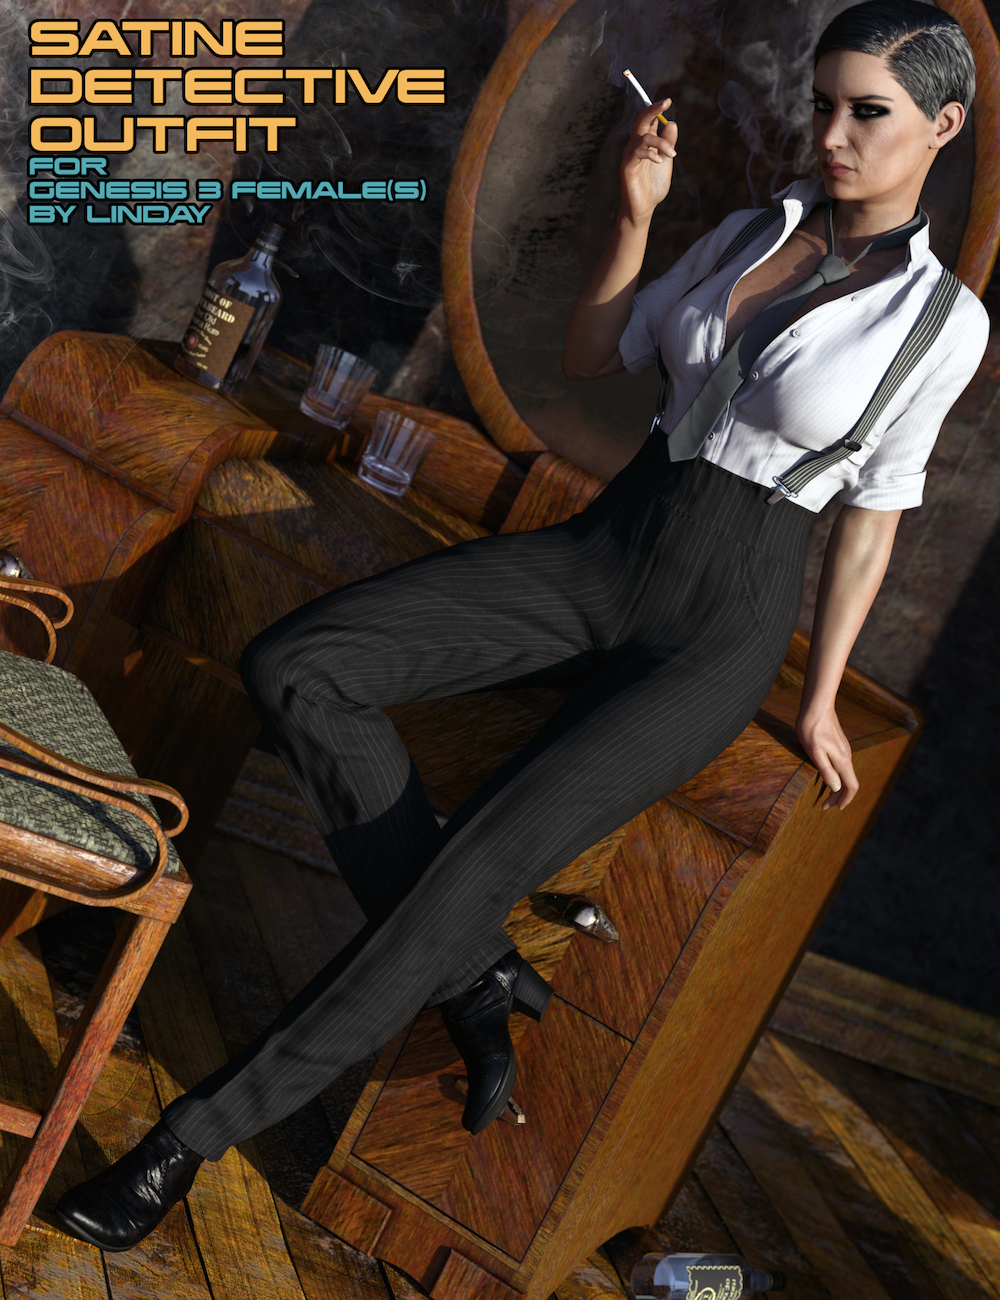 Satine Detective Outfit for Genesis 3 Female(s) by: Linday, 3D Models by Daz 3D